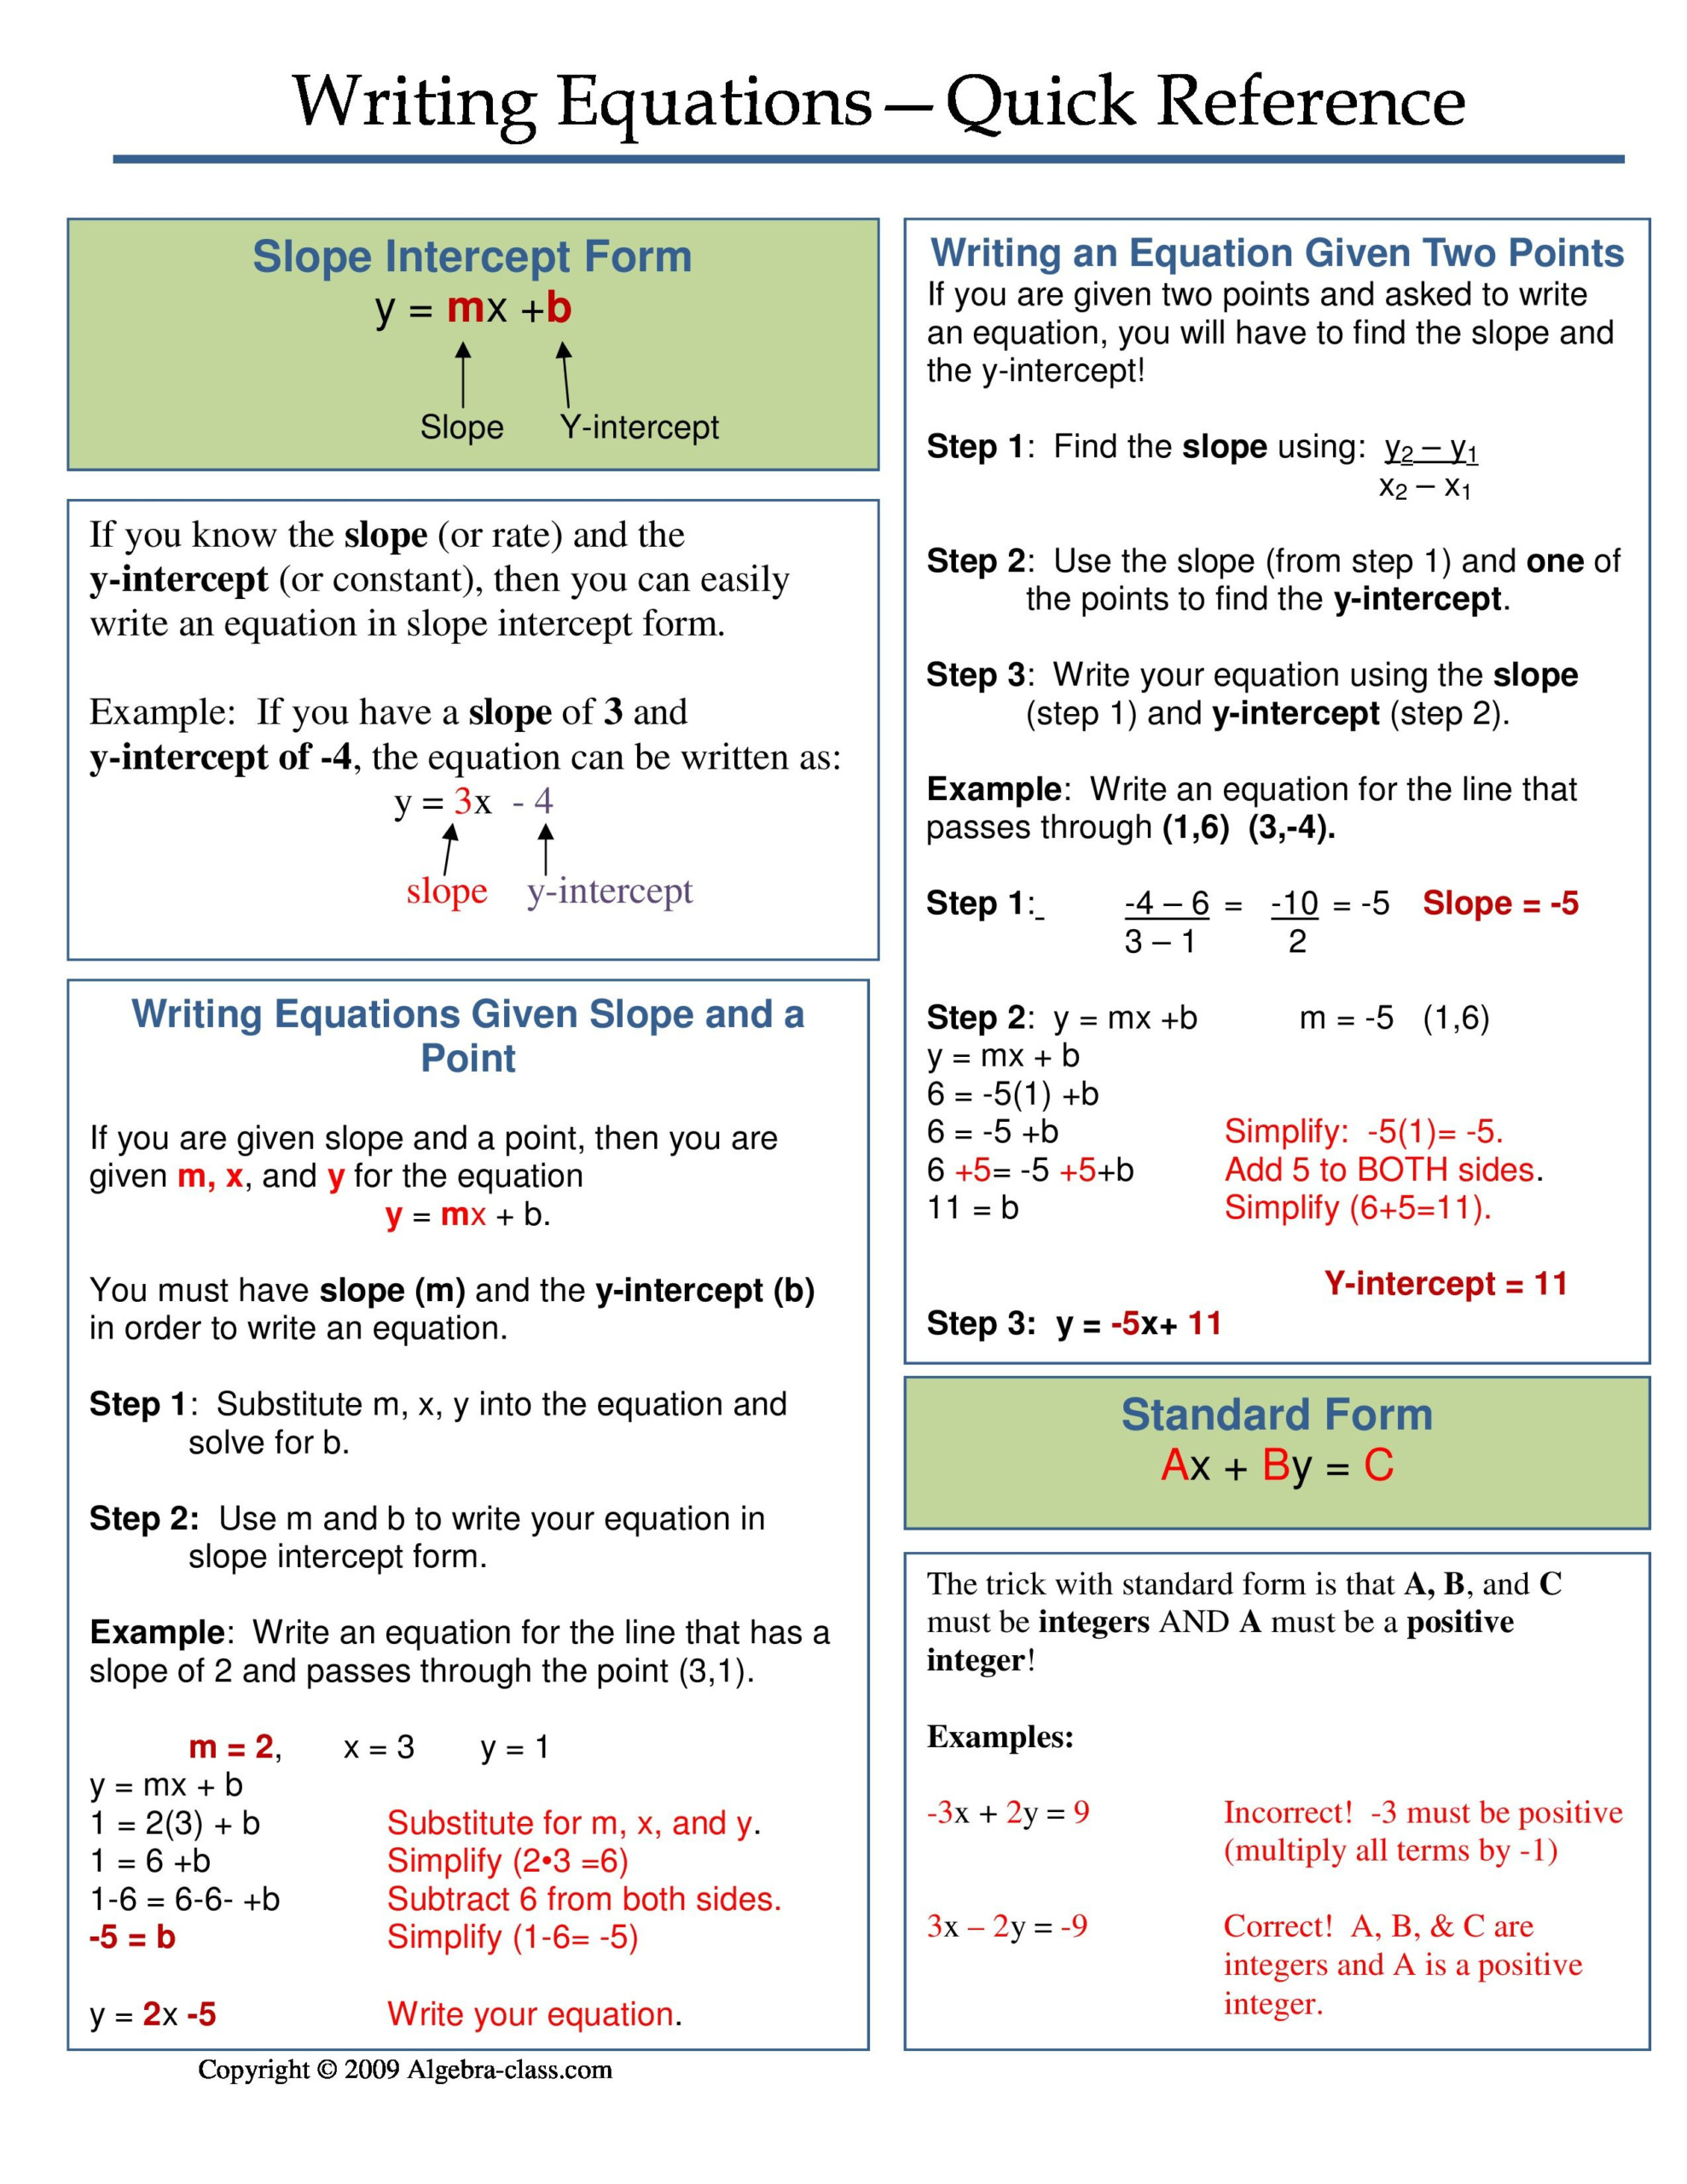 One Page Notes Worksheet For Writing Equations Unit